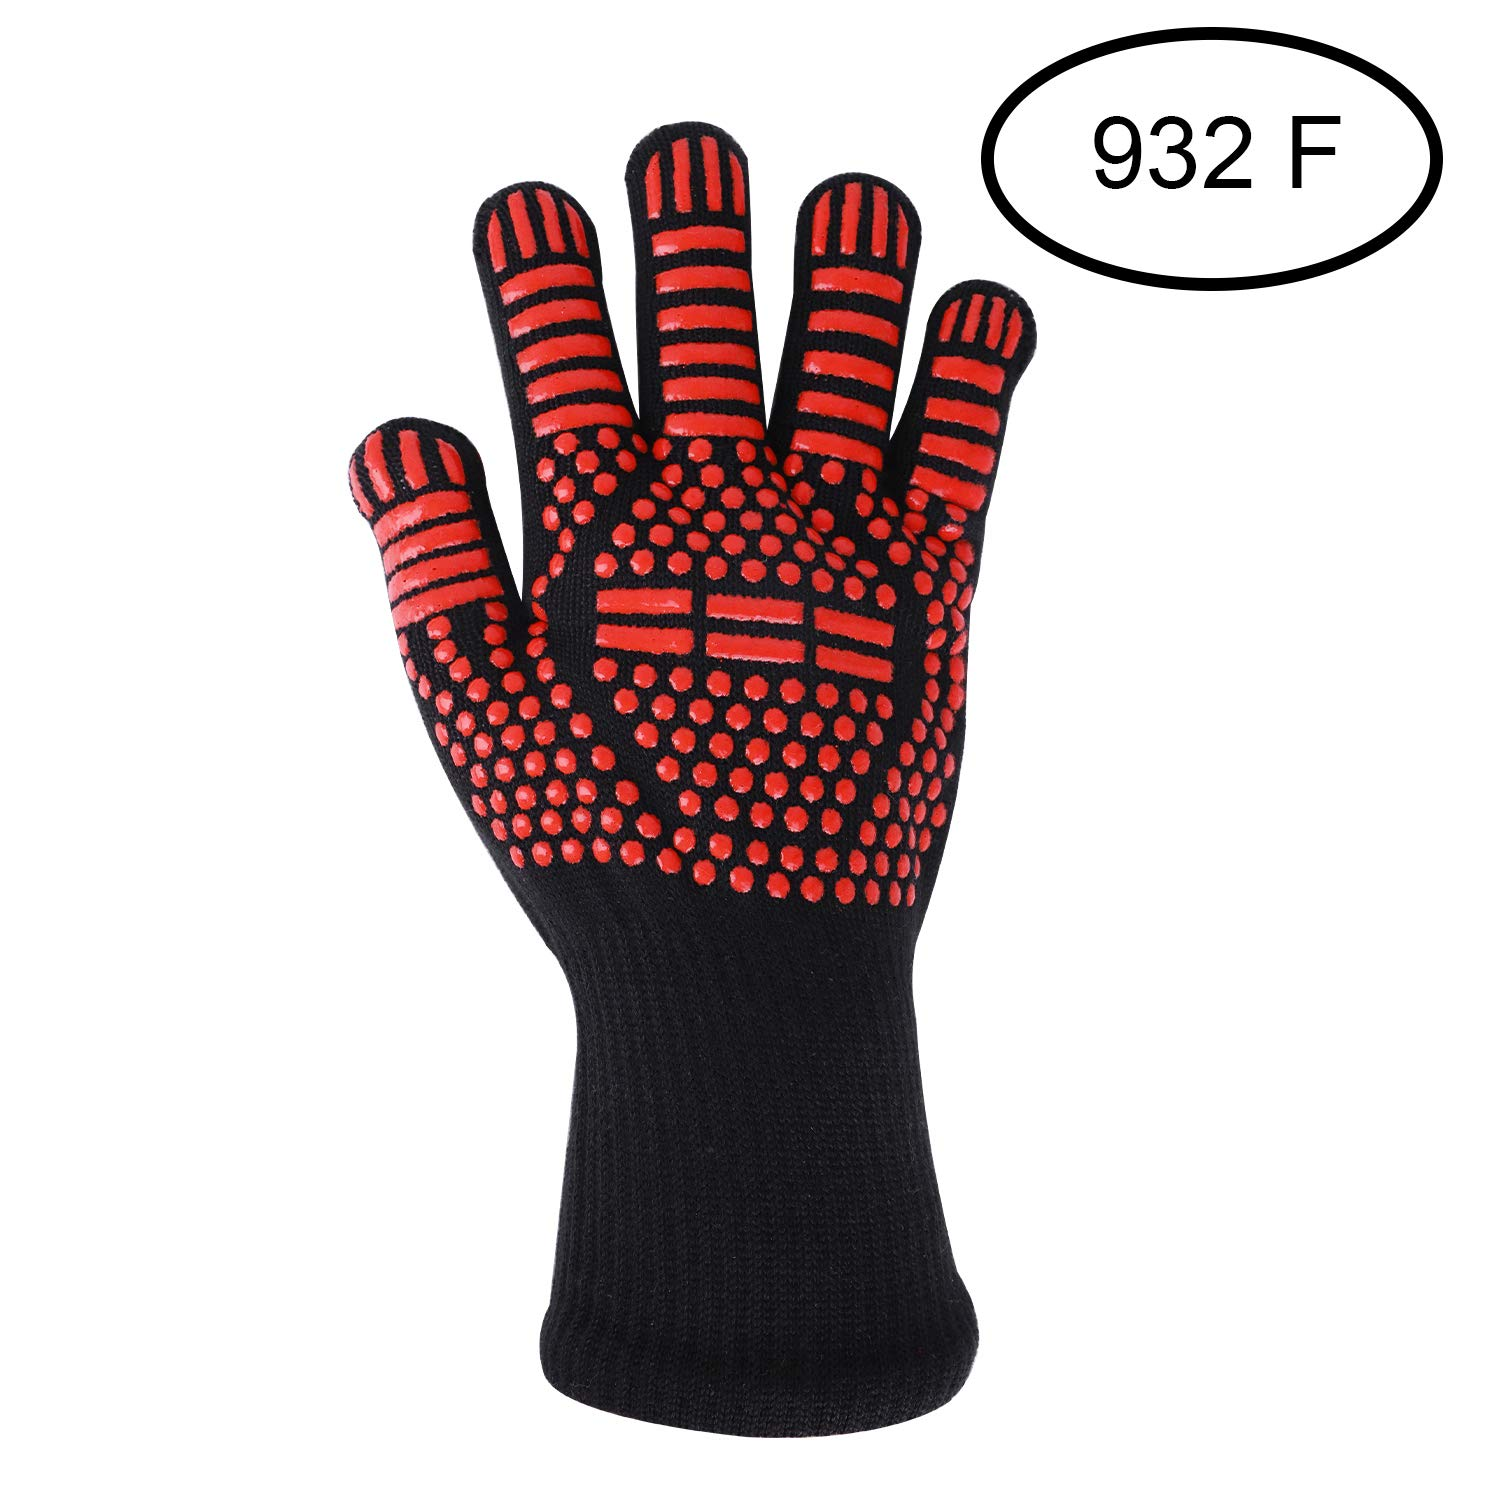 Hot Oven Mitts Gloves Anti-slip Silicone Cotton Pot Holder Professional Heat-Resistant Fireproof Gloves for Cooking Baking Barbecue BBQ Microwave Oven Toaster BBQ Grilling Kitchen 932℉ One Piece